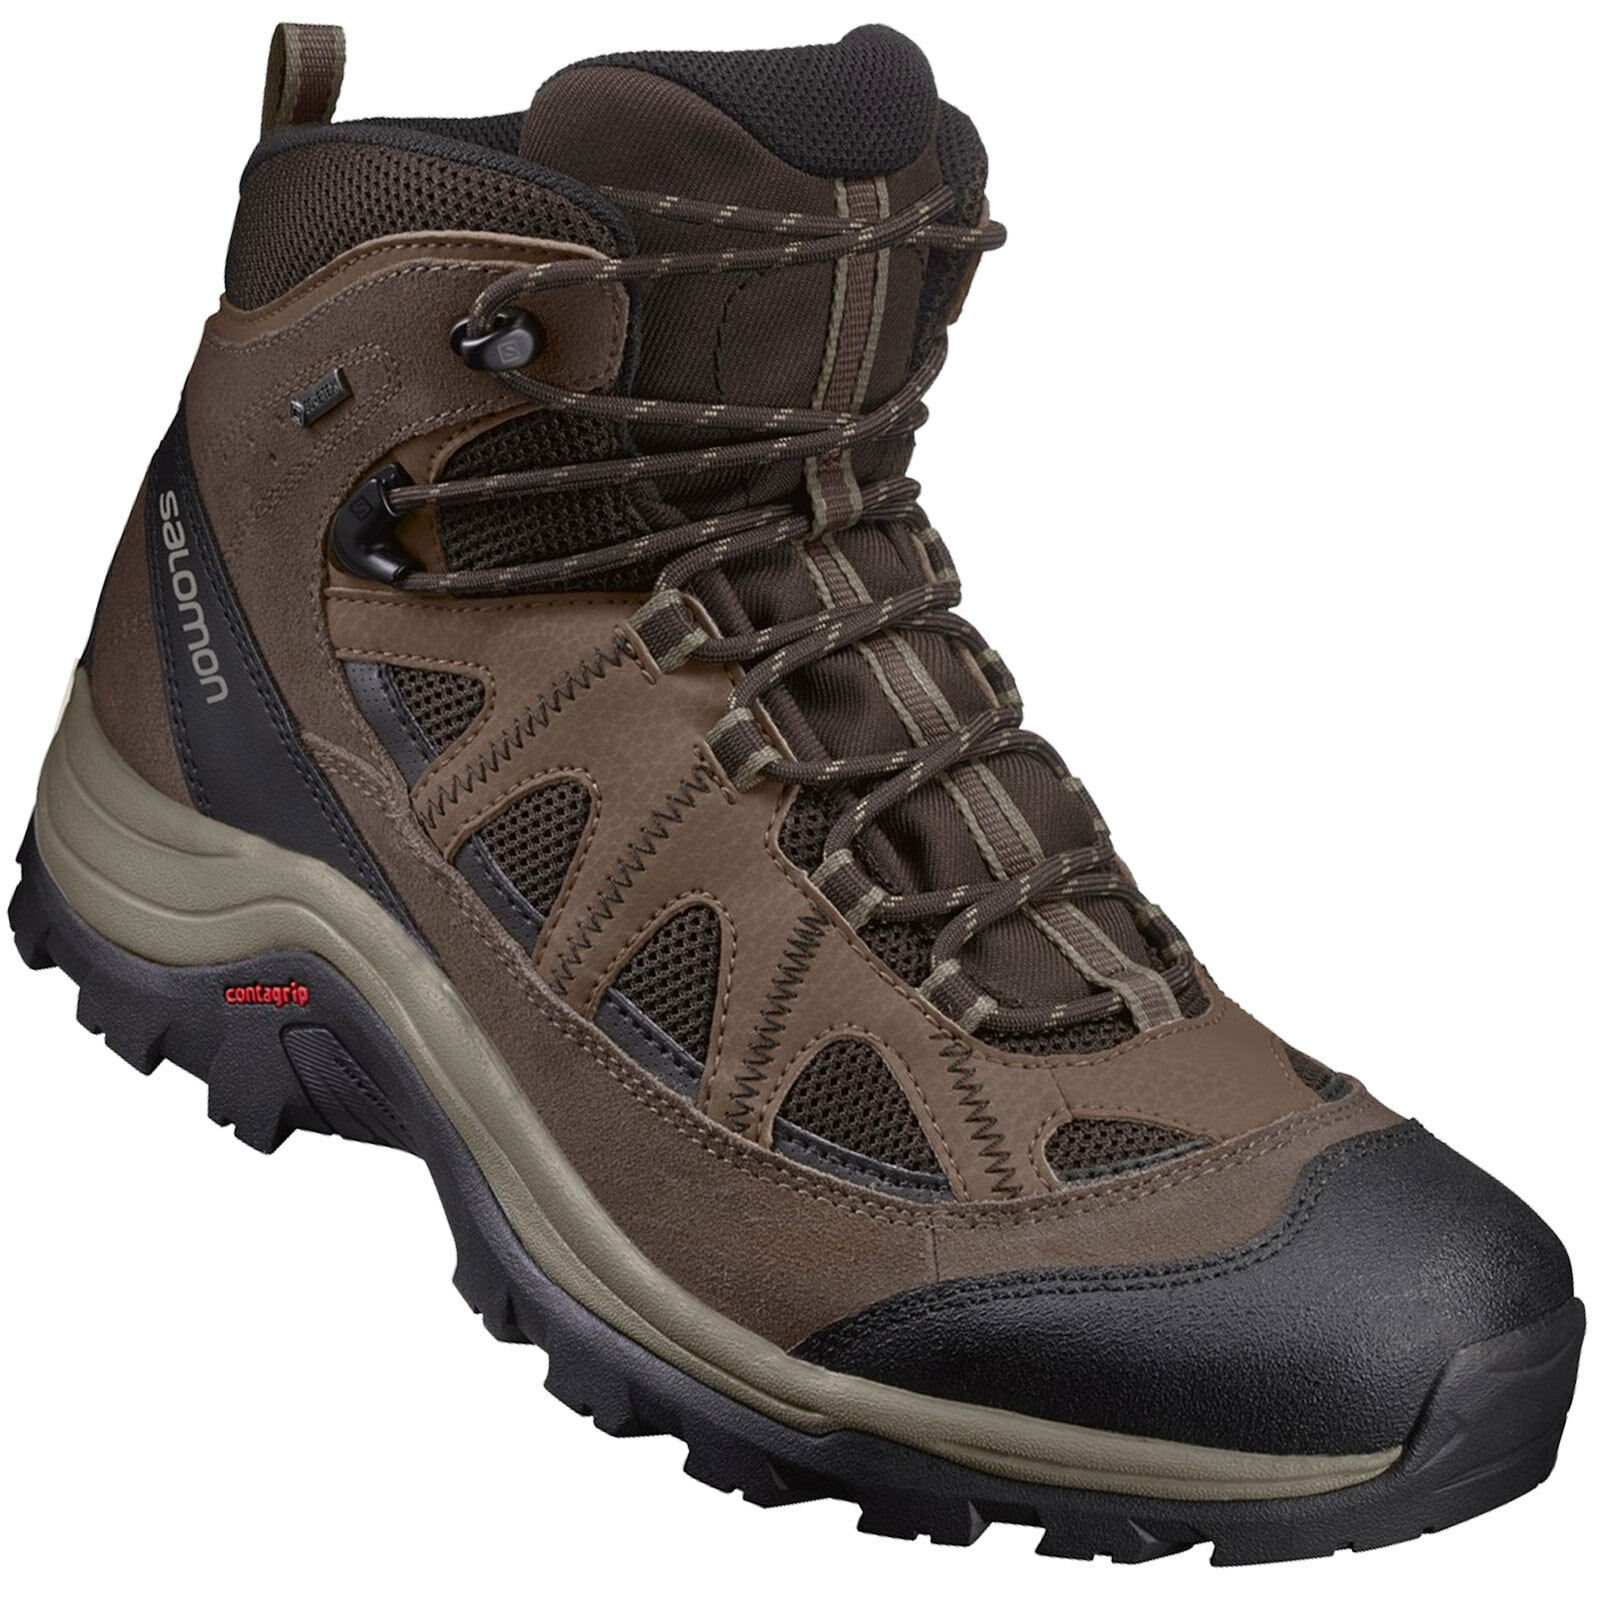 Salomon Authentic Hiking Leder Gore-Tex Herren-Wanderschuhe Outdoor Hiking Authentic Schuhe a1fa28